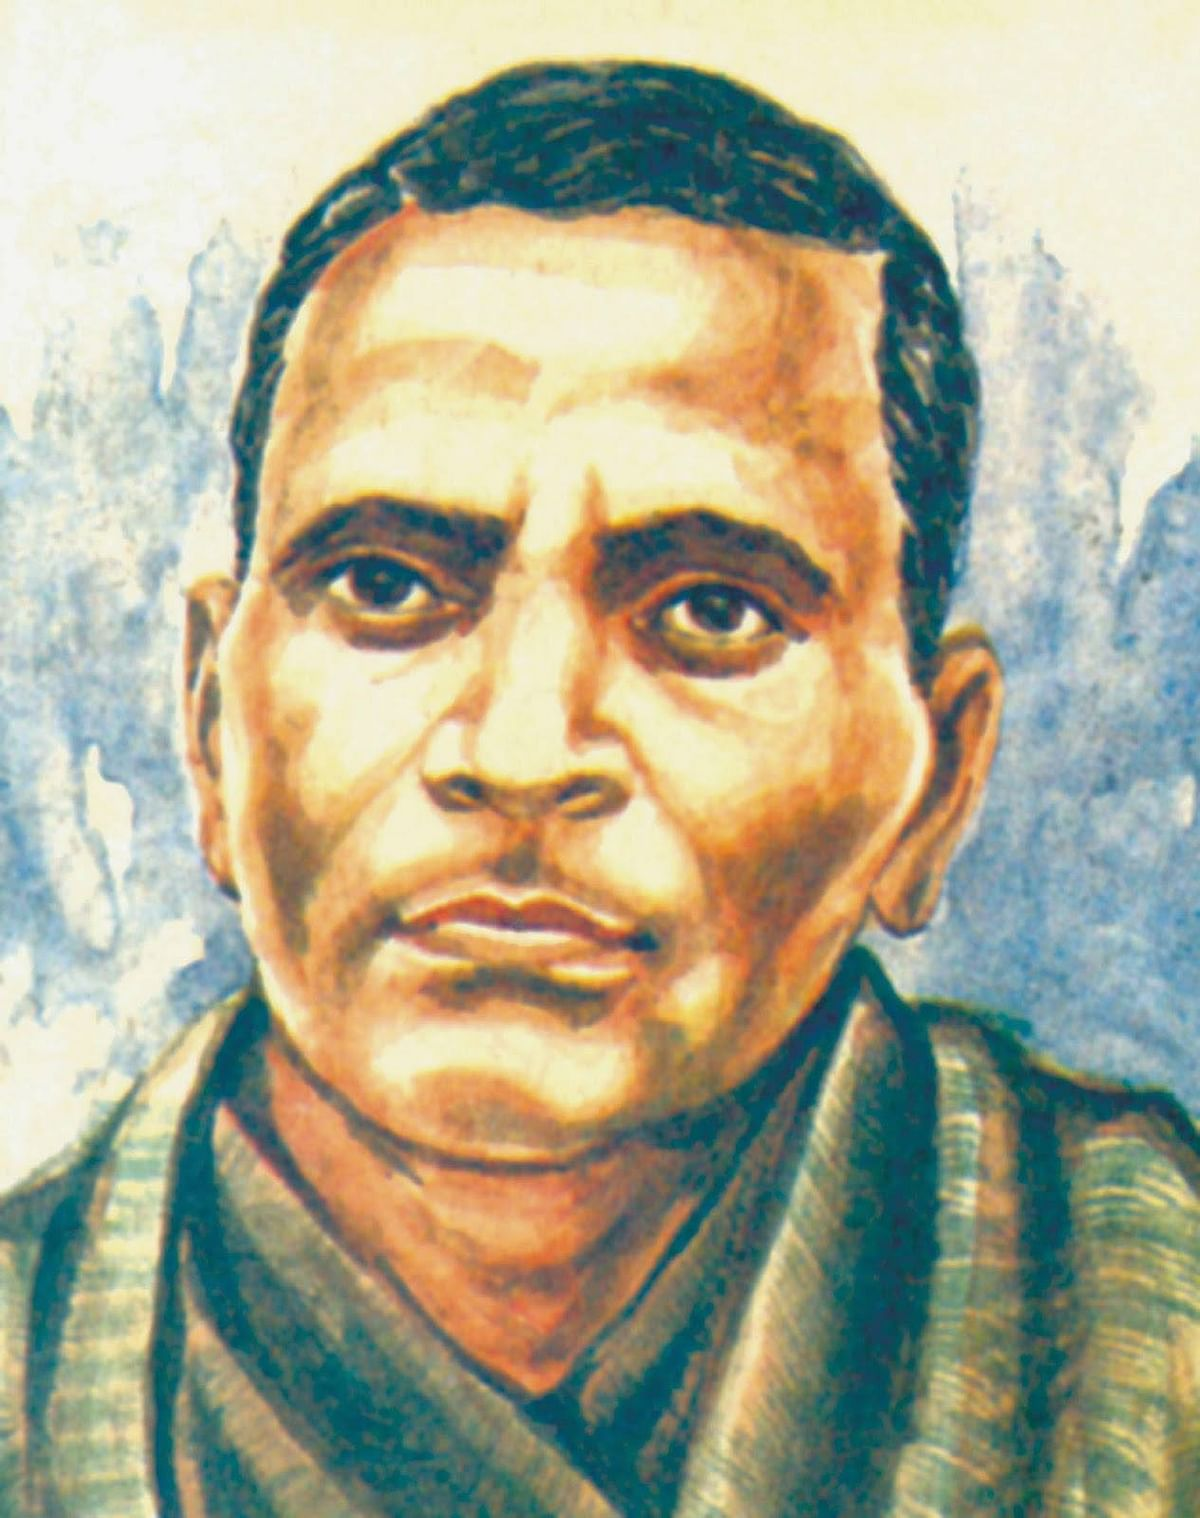 Telugu freedom fighter and pro-Andhra activist Potti Sreeramulu fasted until death. In the aftermath of his death, Andhra state emerged.